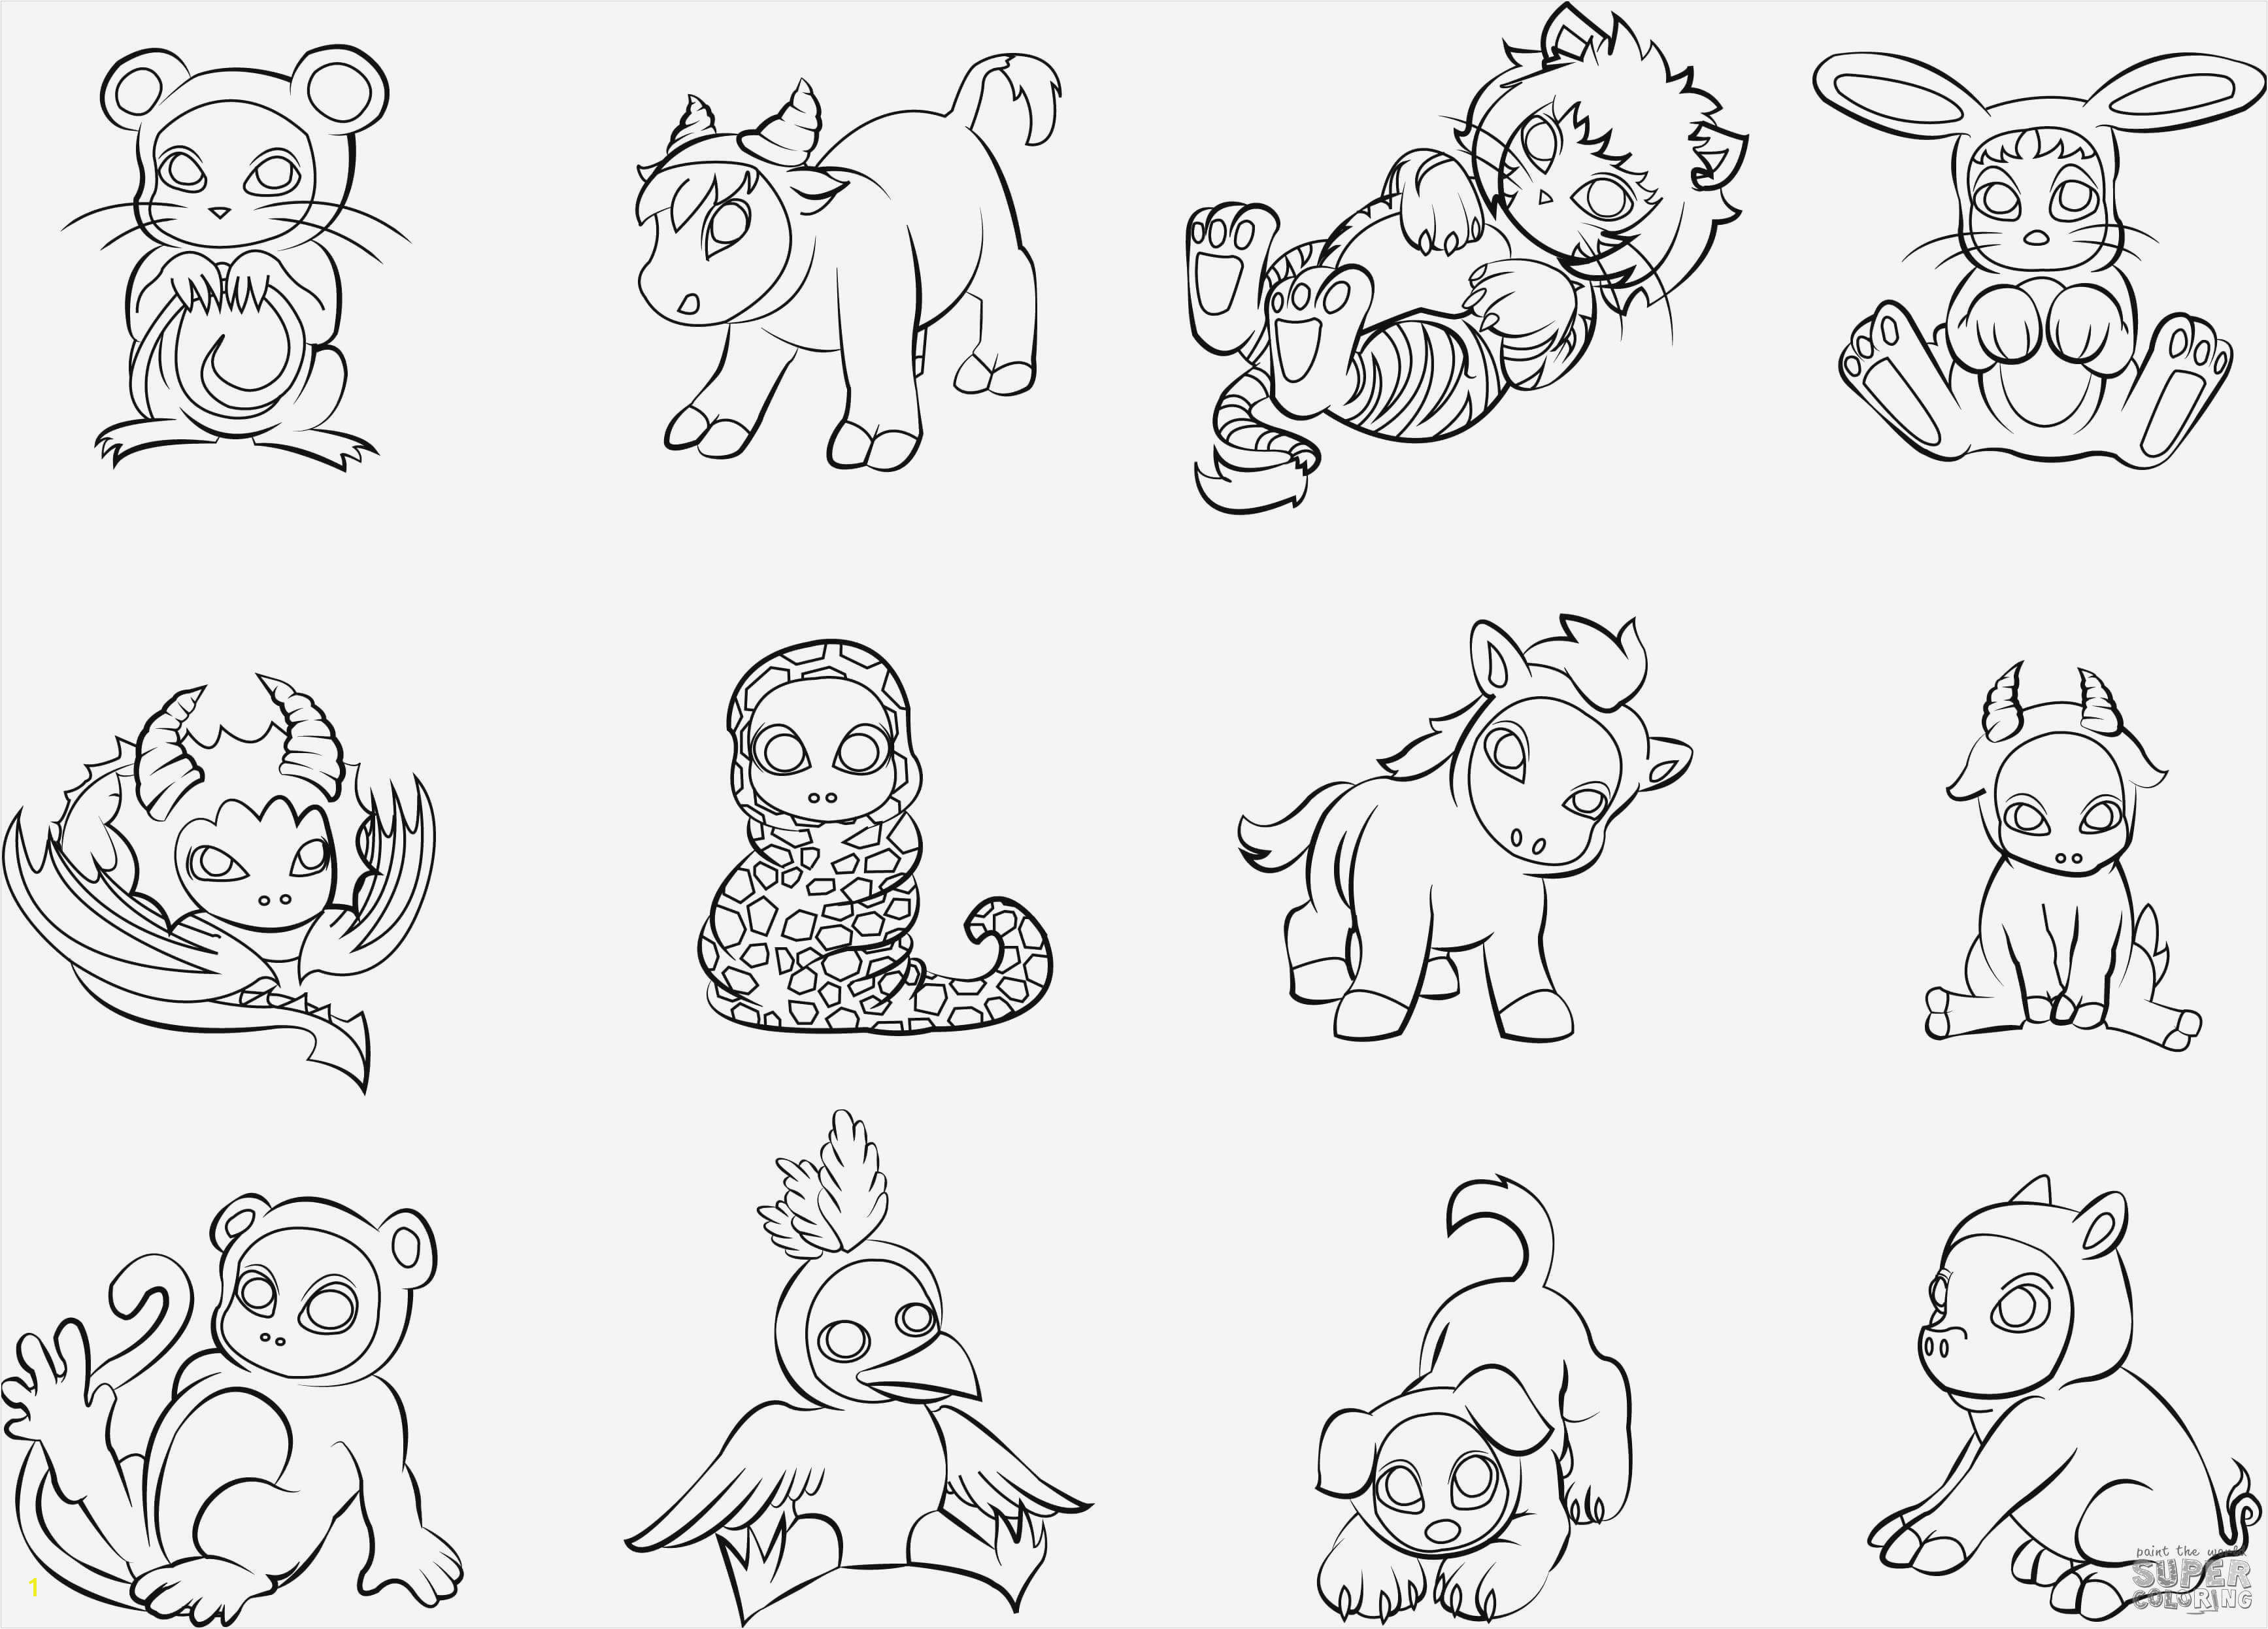 Printable Animal Coloring Pages Stunning Printable Animal Coloring Pages Such As Free Printable Animal Coloring